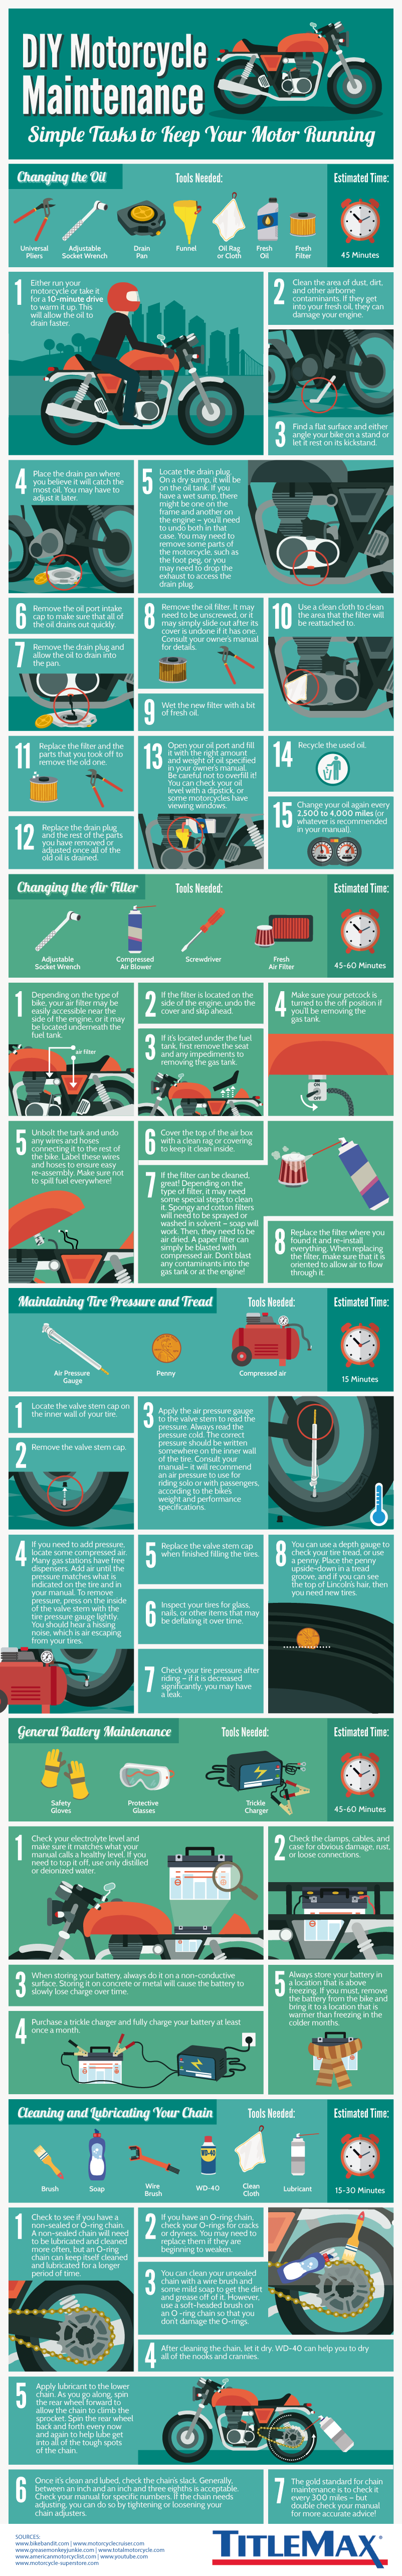 DIY Motorcycle Maintenance #infographic